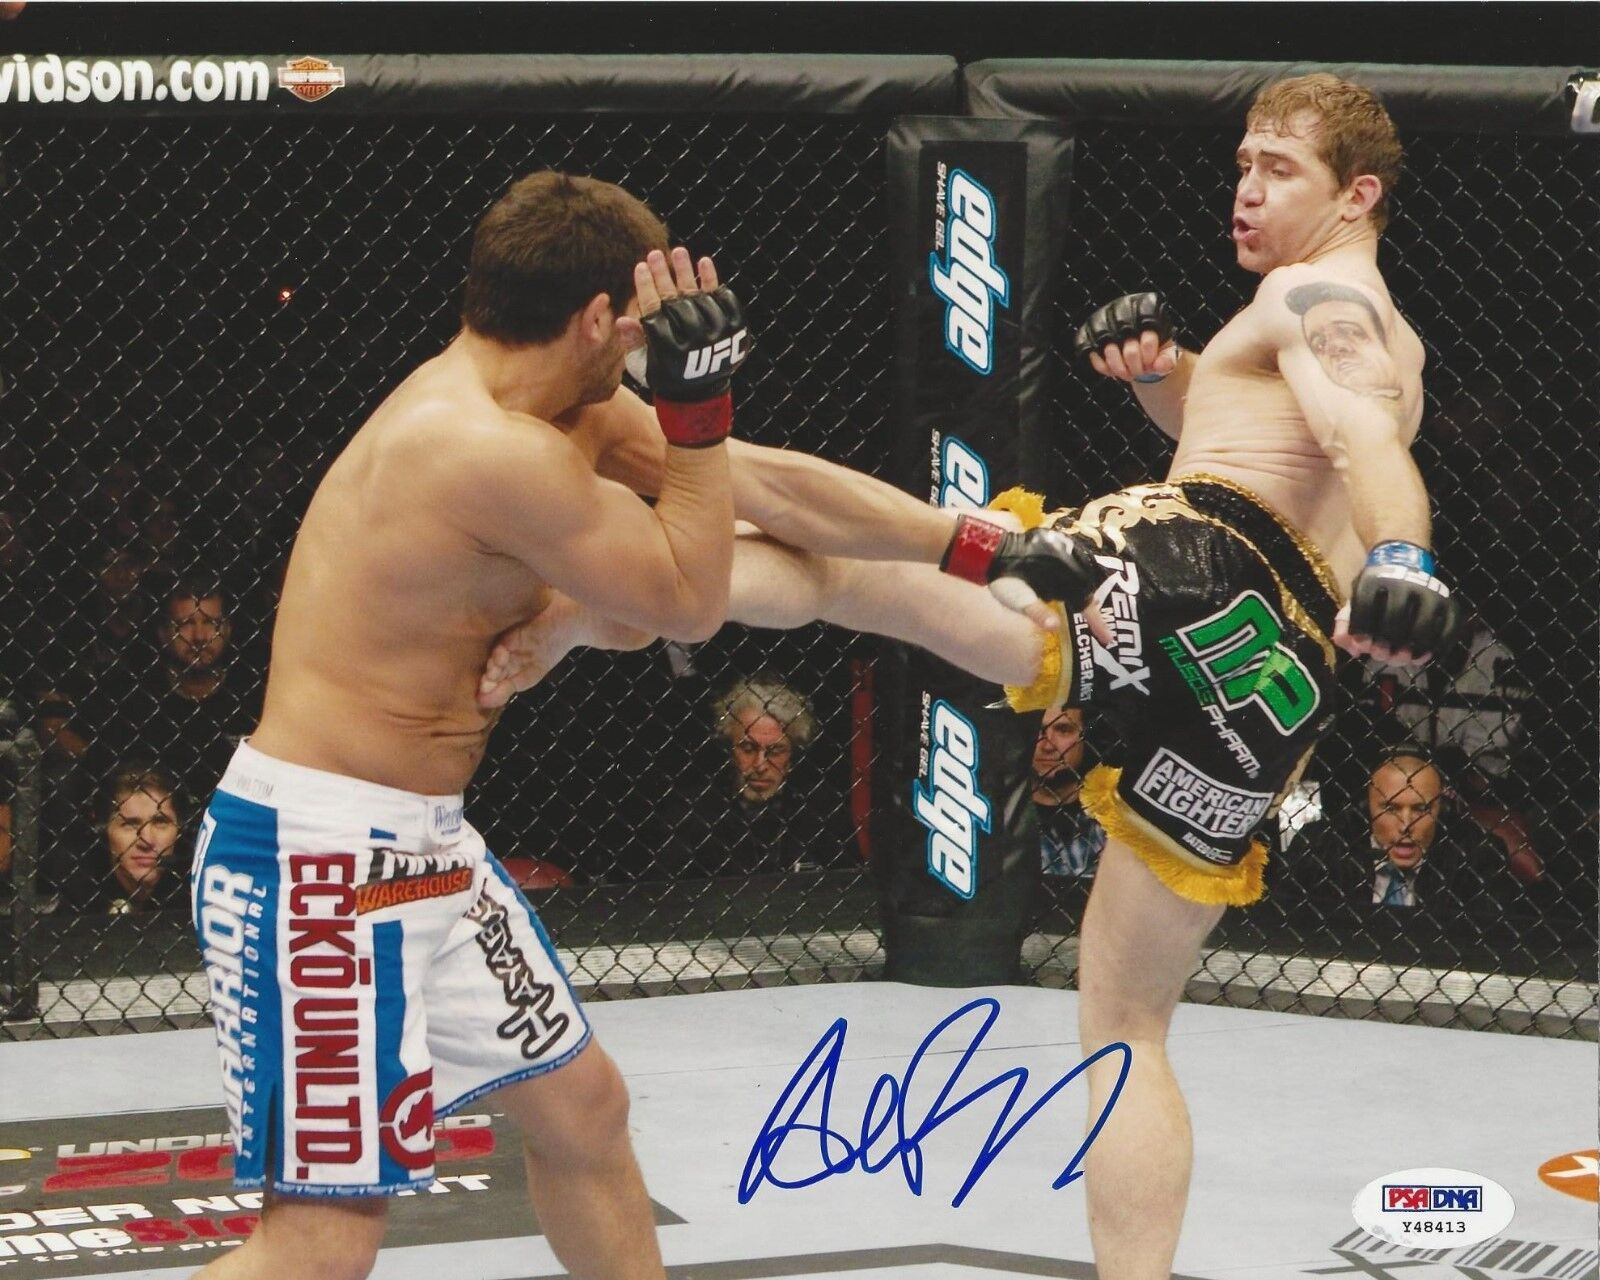 Alan Belcher UFC Fighter signed 8x10 photo PSA/DNA # Y48413